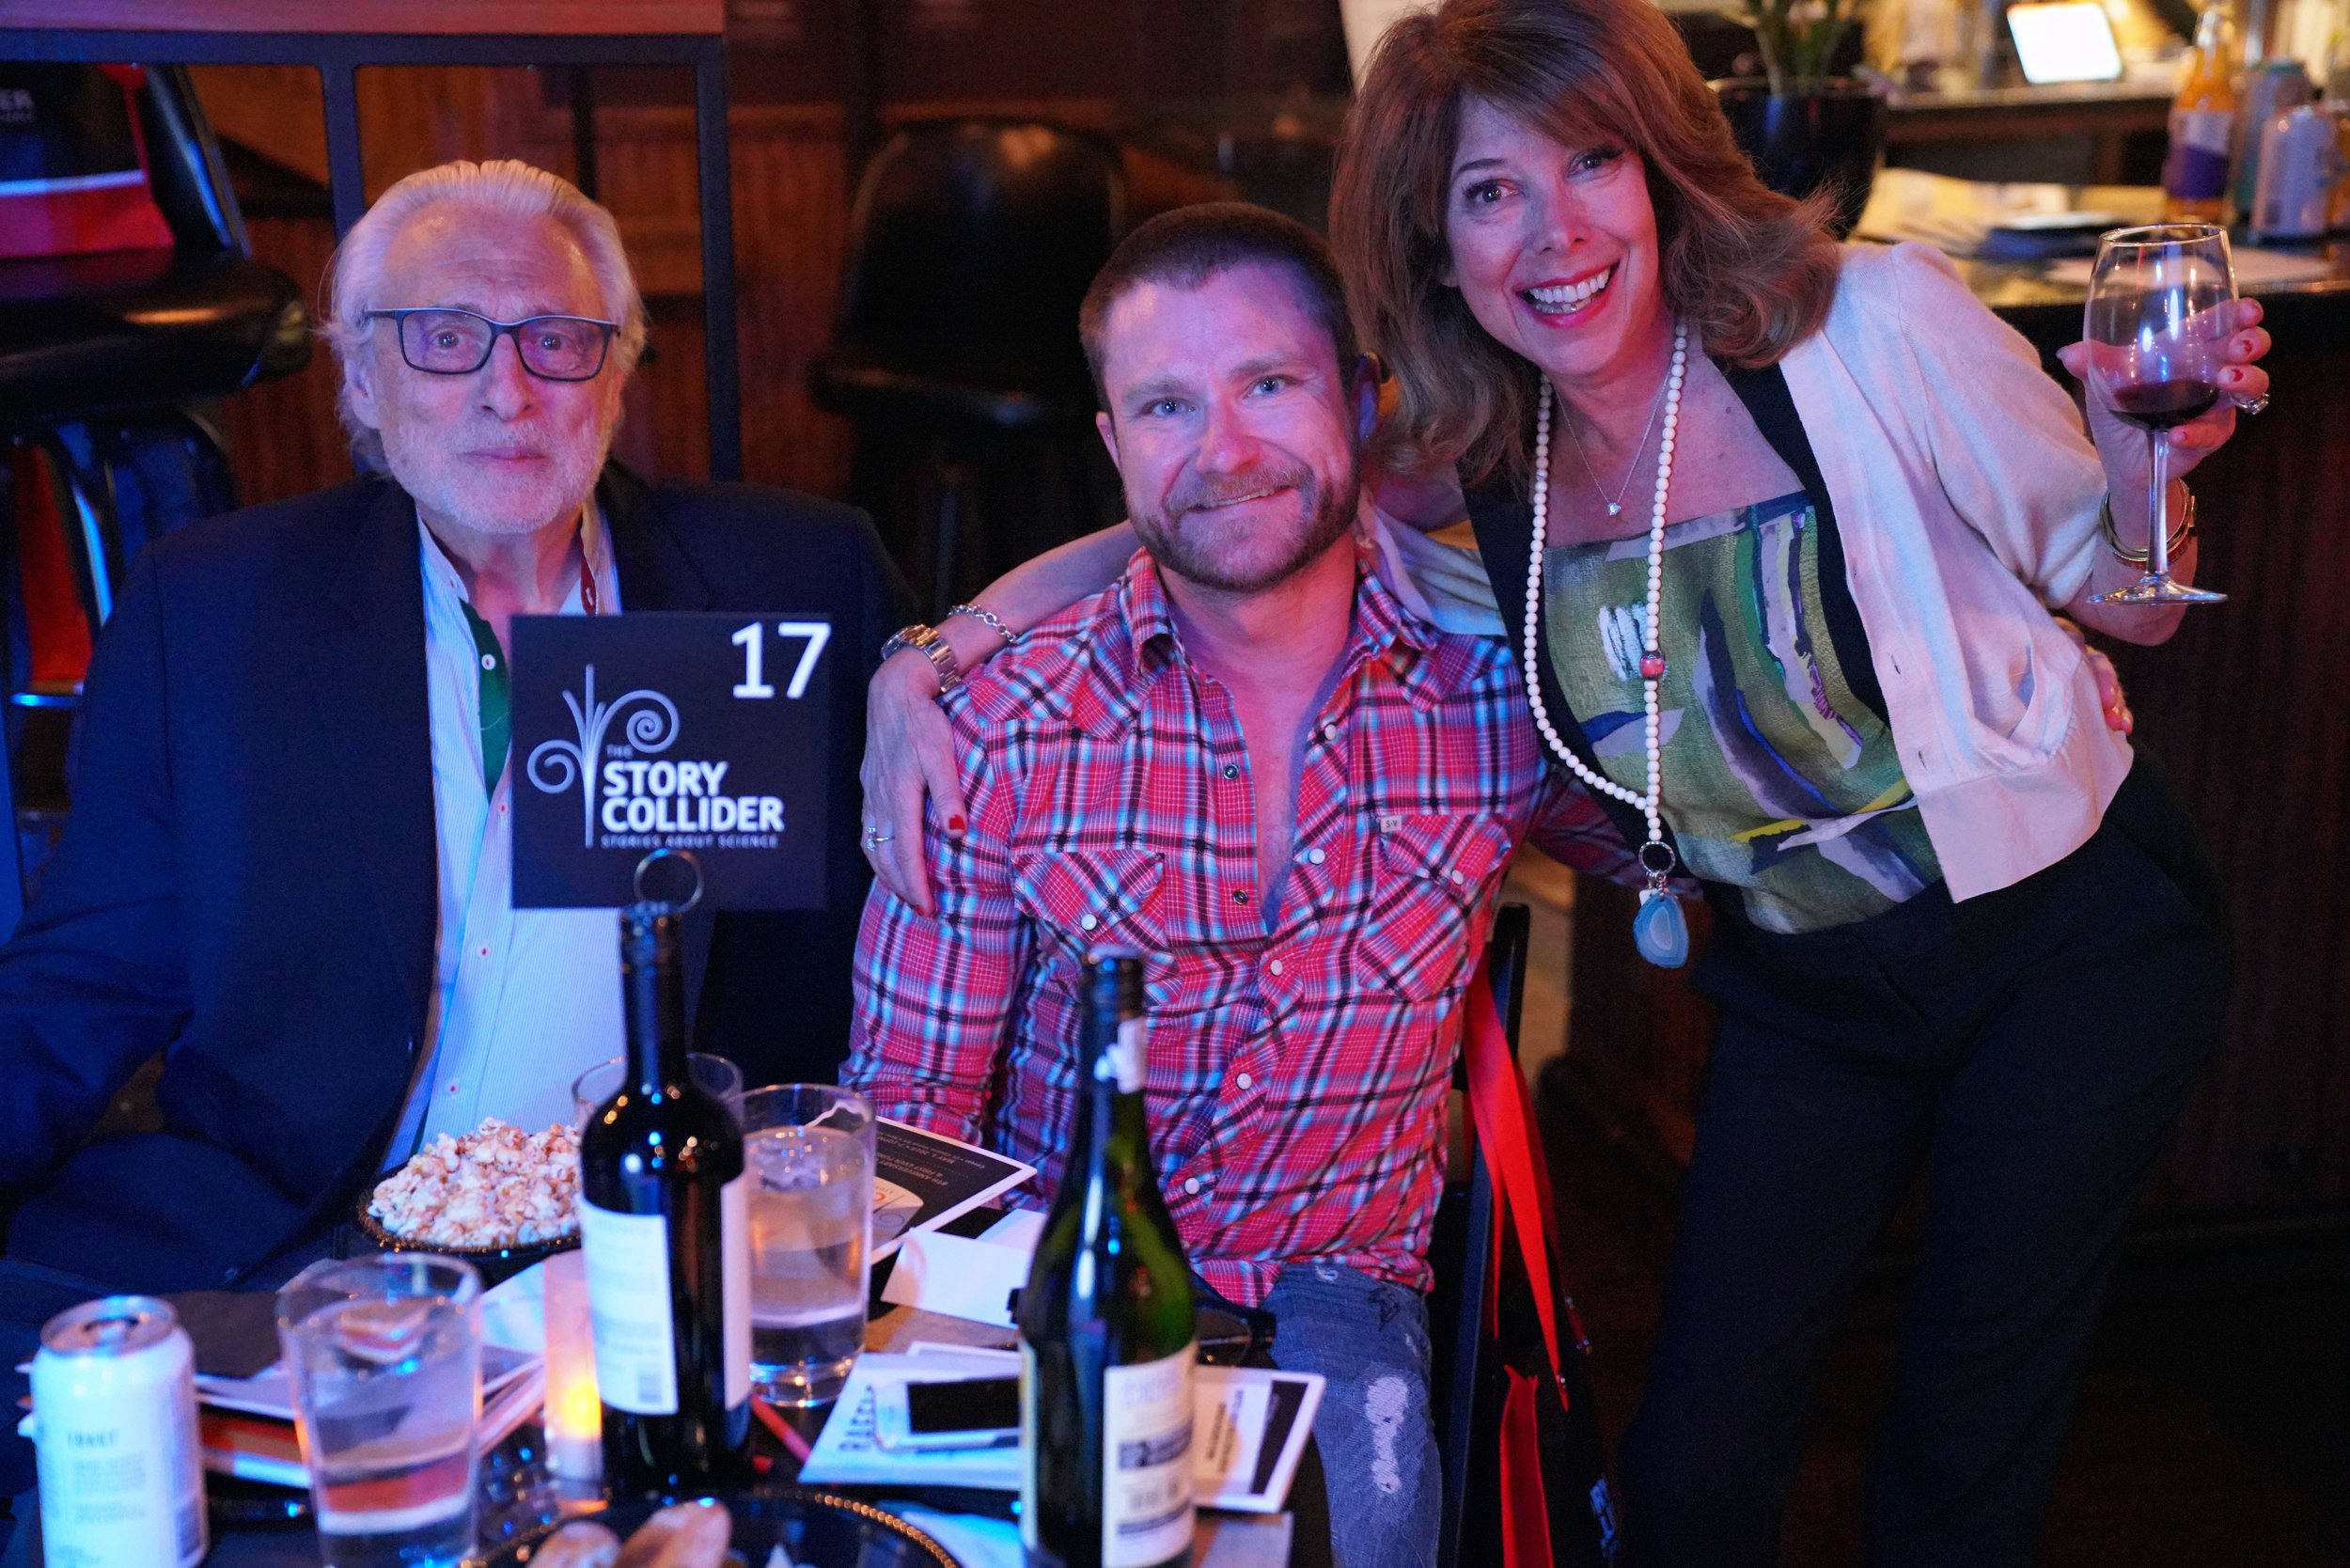 Story Collider supporters  Sandi Marx  (right), New York-based storyteller, and Danny Miller (center), MIT astrophysicist. (Check out Danny's story on our podcast  here .)